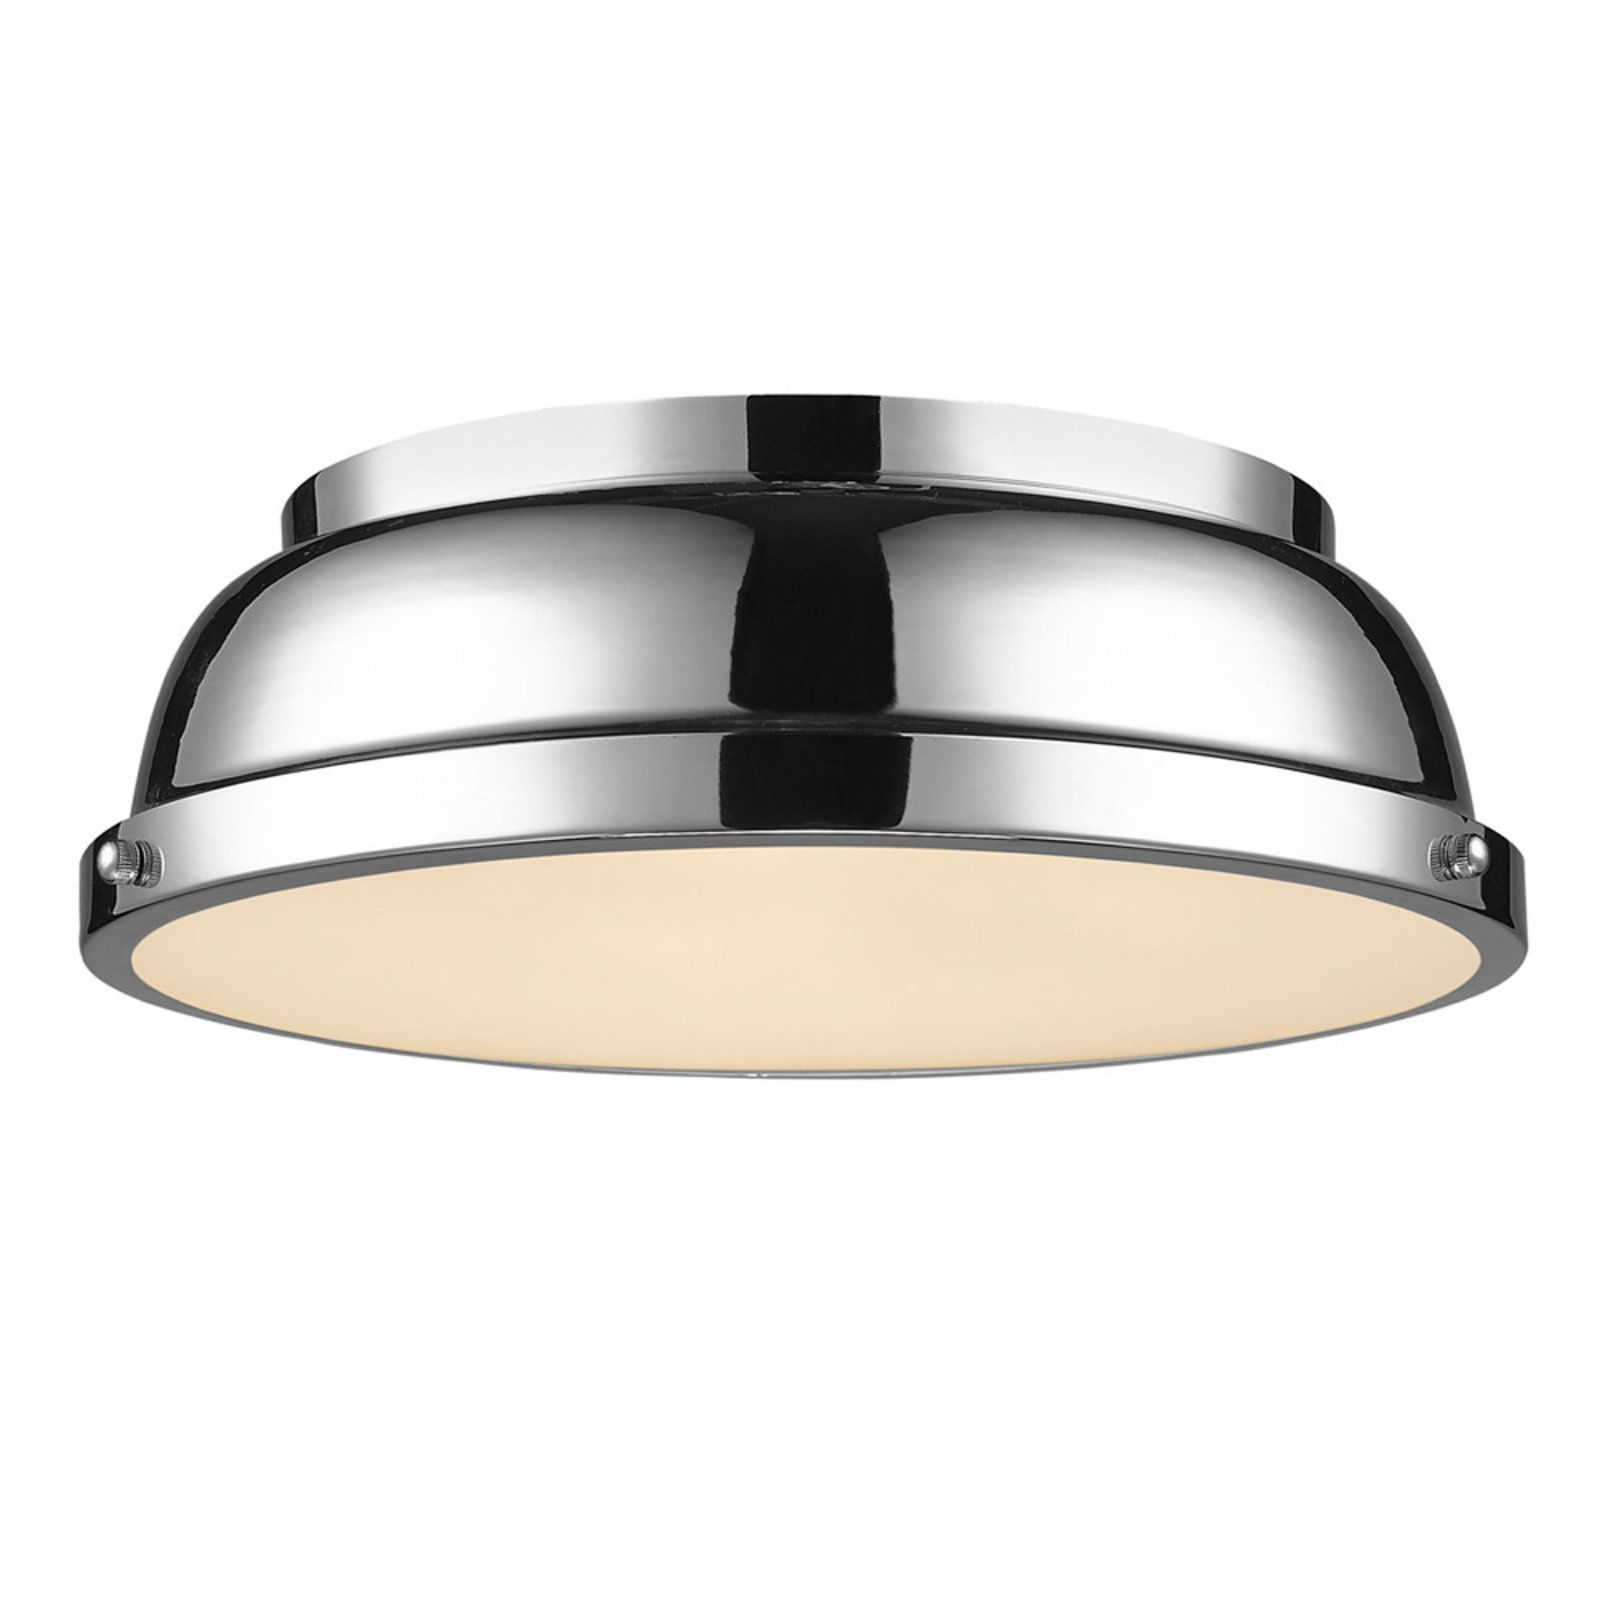 Classic dome metal ceiling light ceiling lights ceilings and chrome bathroom lights classic dome metal ceiling light chrome aloadofball Choice Image